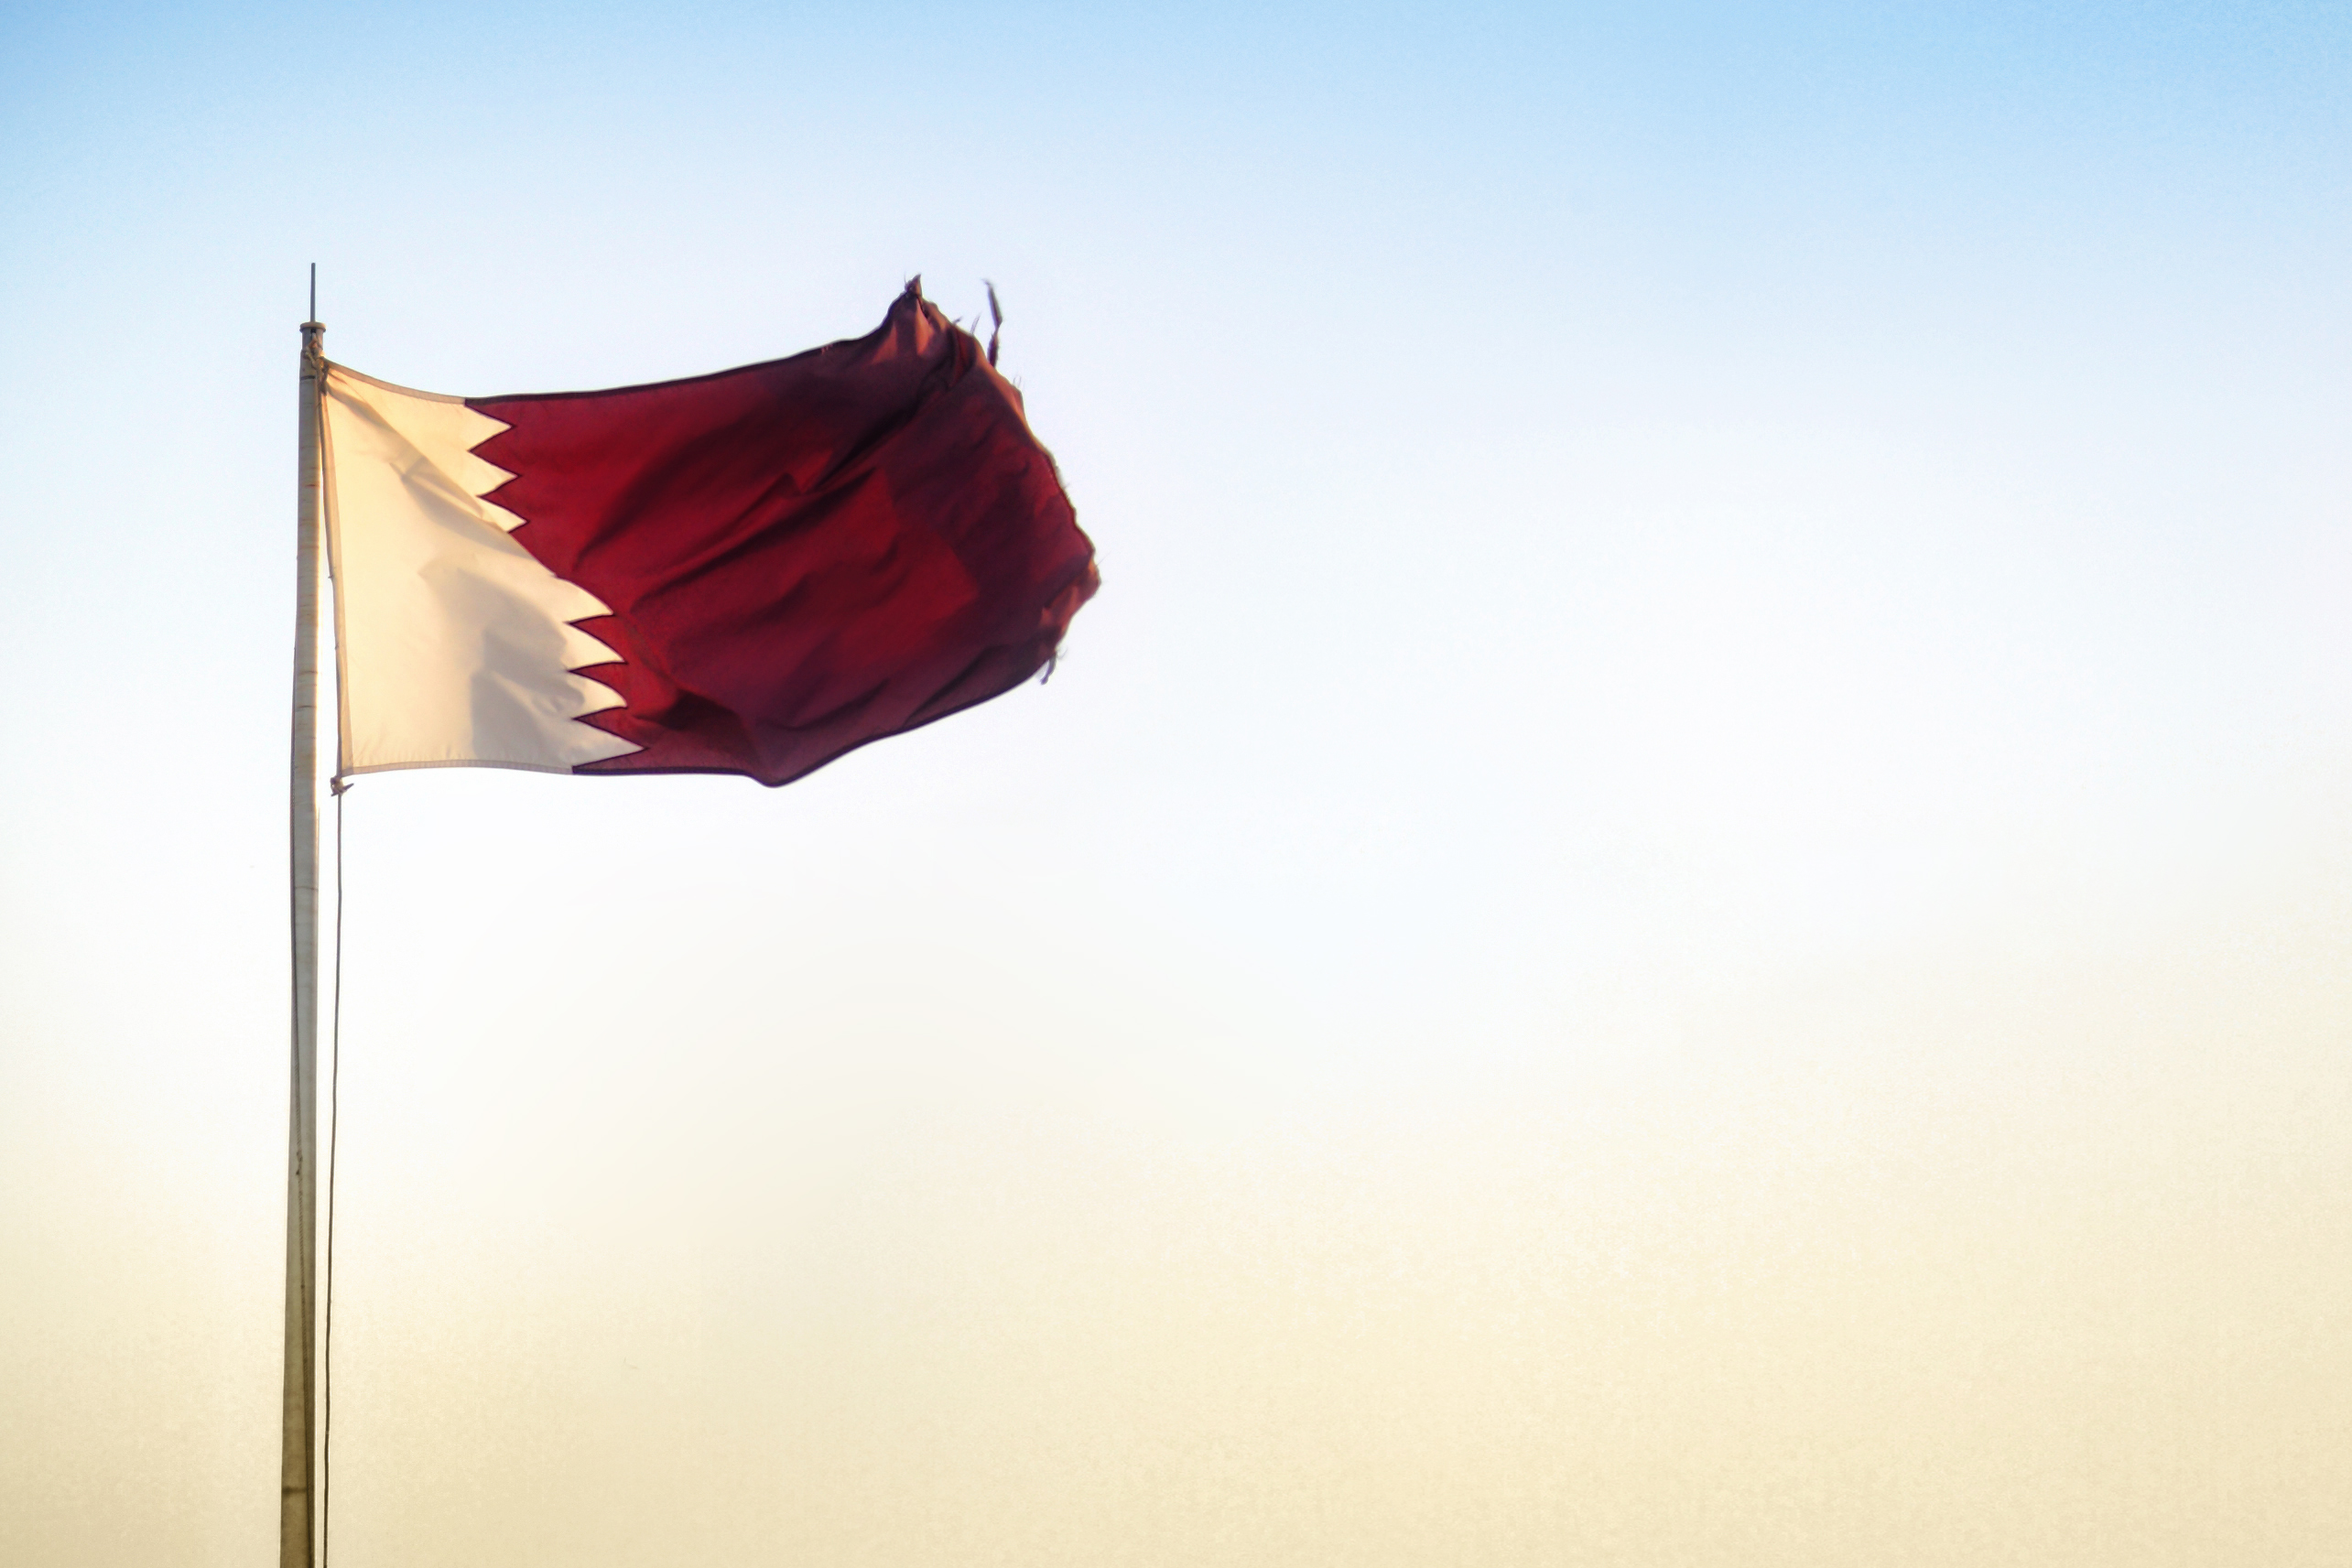 Qatar by juanedc on Flickr